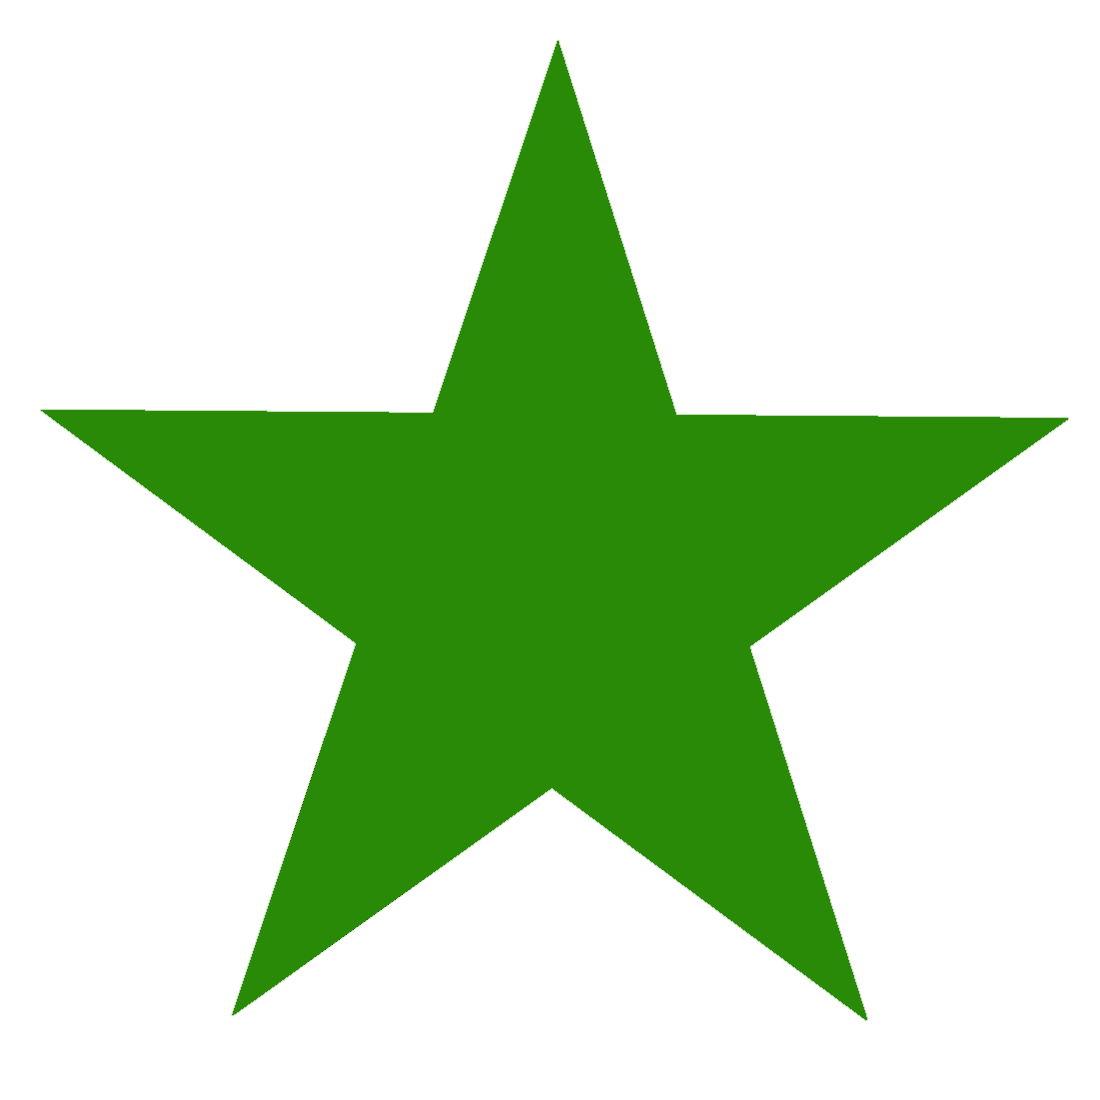 Green  Star PNG Image